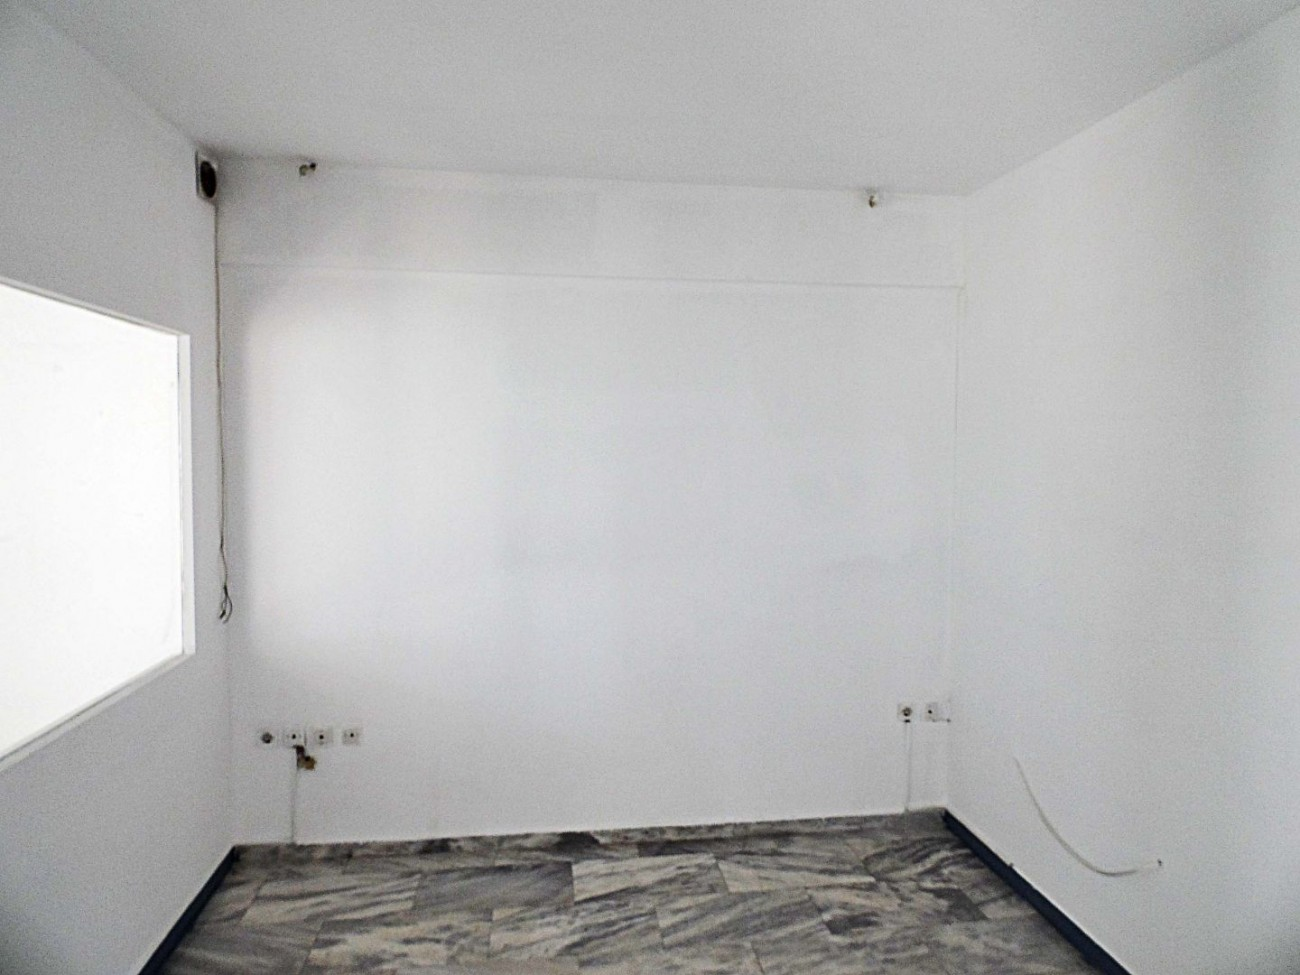 Office for Rent in A' Cemetery, Athens City Center, Greece